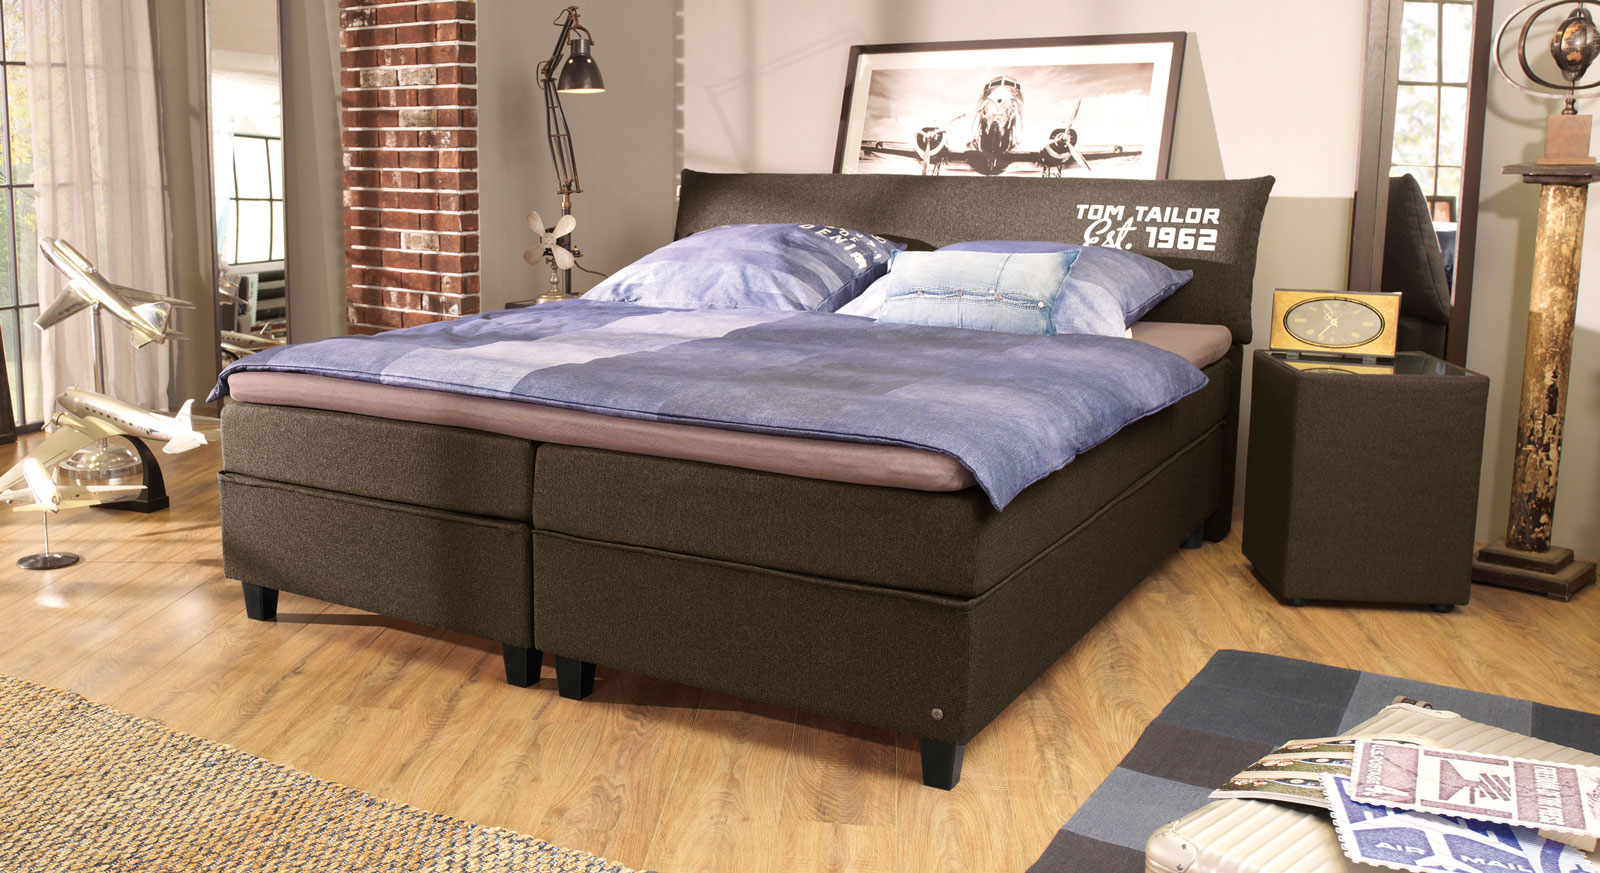 Boxspringbett Tom Tailor Color in Braun mit Aufdruck